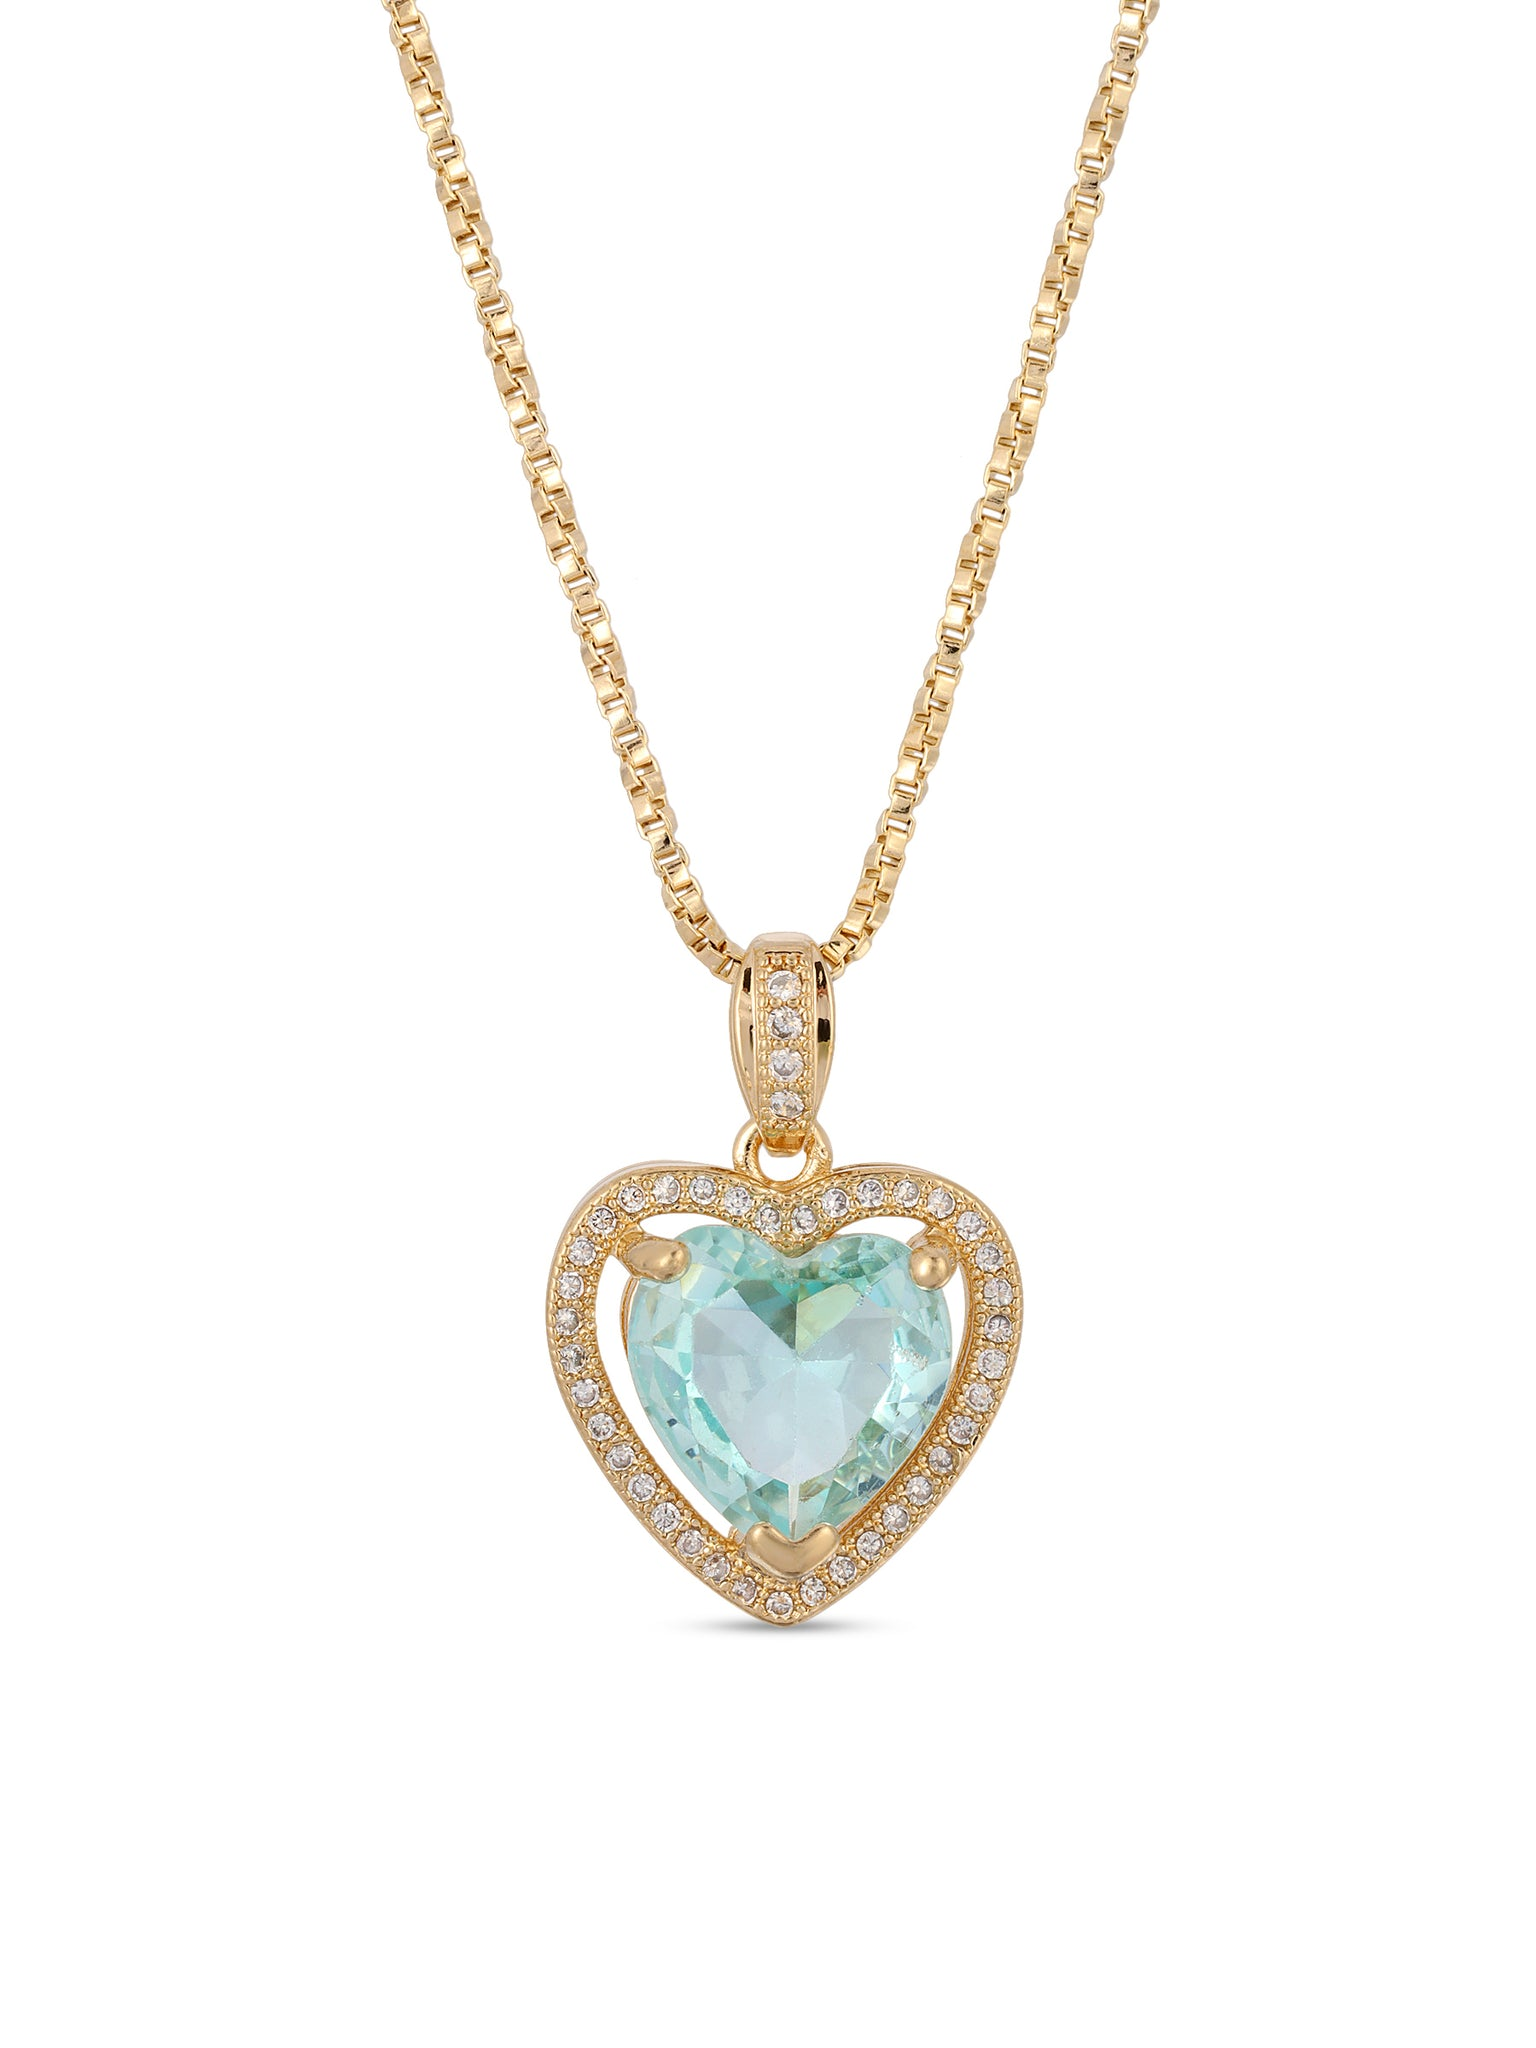 The Mini Heart Necklace - Aqua